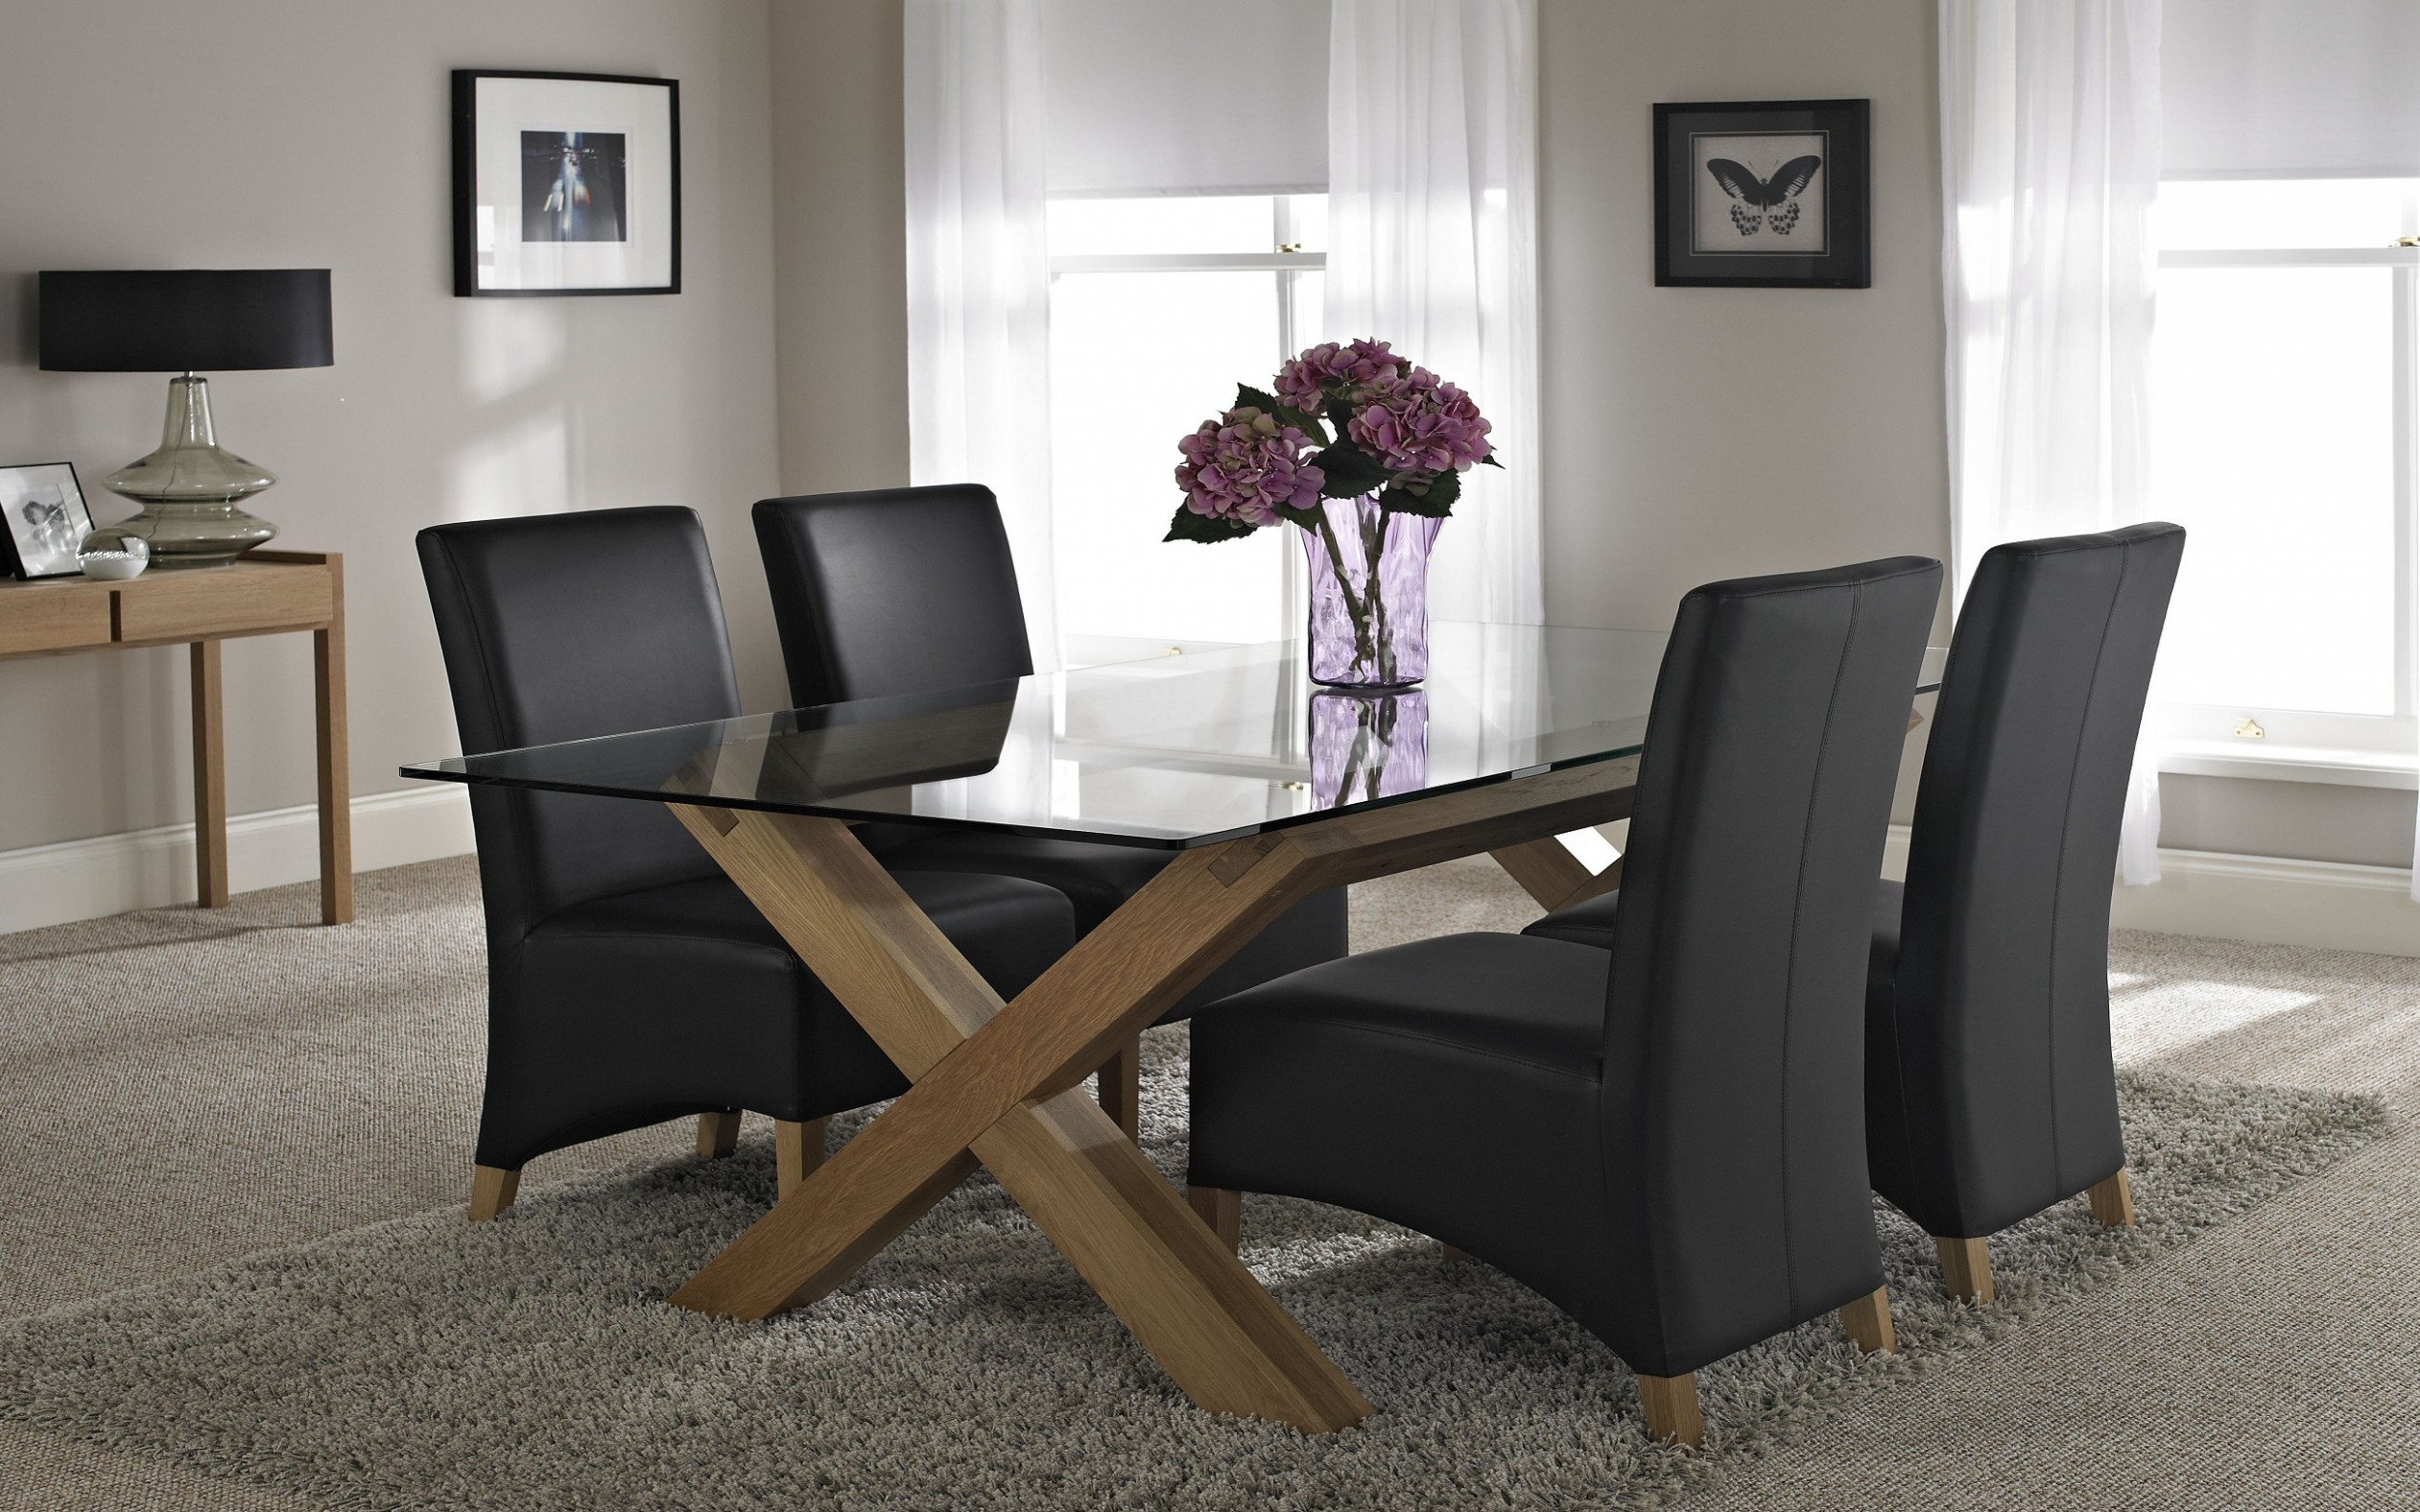 Glass Dining Tables Buying Guide -  Vale Furnishers Blog - Dining Room Ideas Glass Table